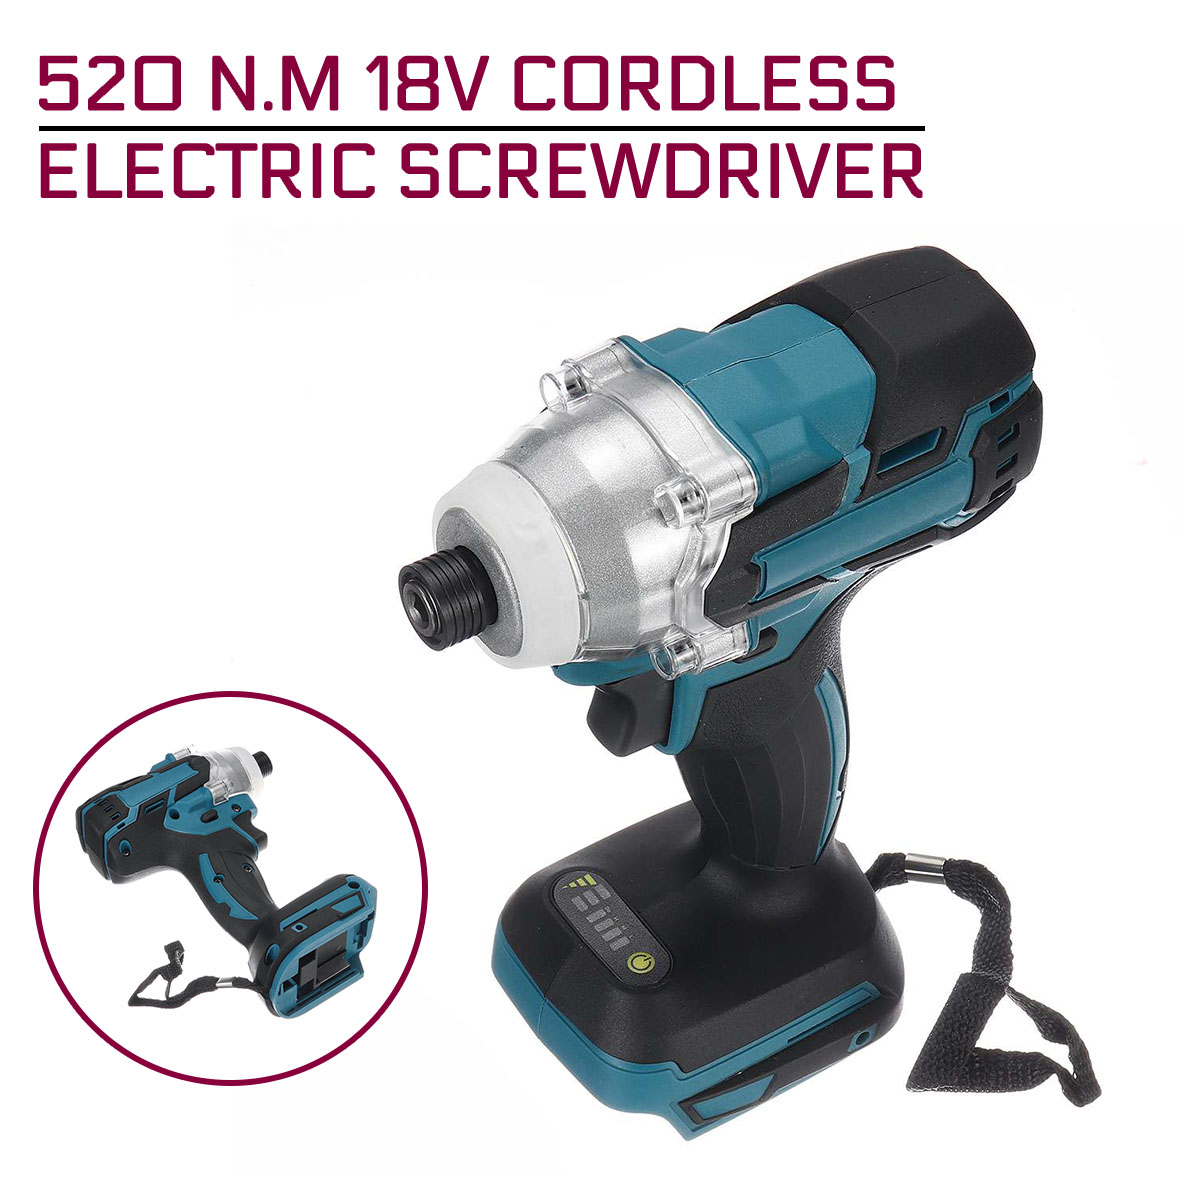 18V 520 N m Cordless Electric Screwdriver Speed Impact Wrench Rechargable Brushless Drill Driver  LED Light For Makita Battery